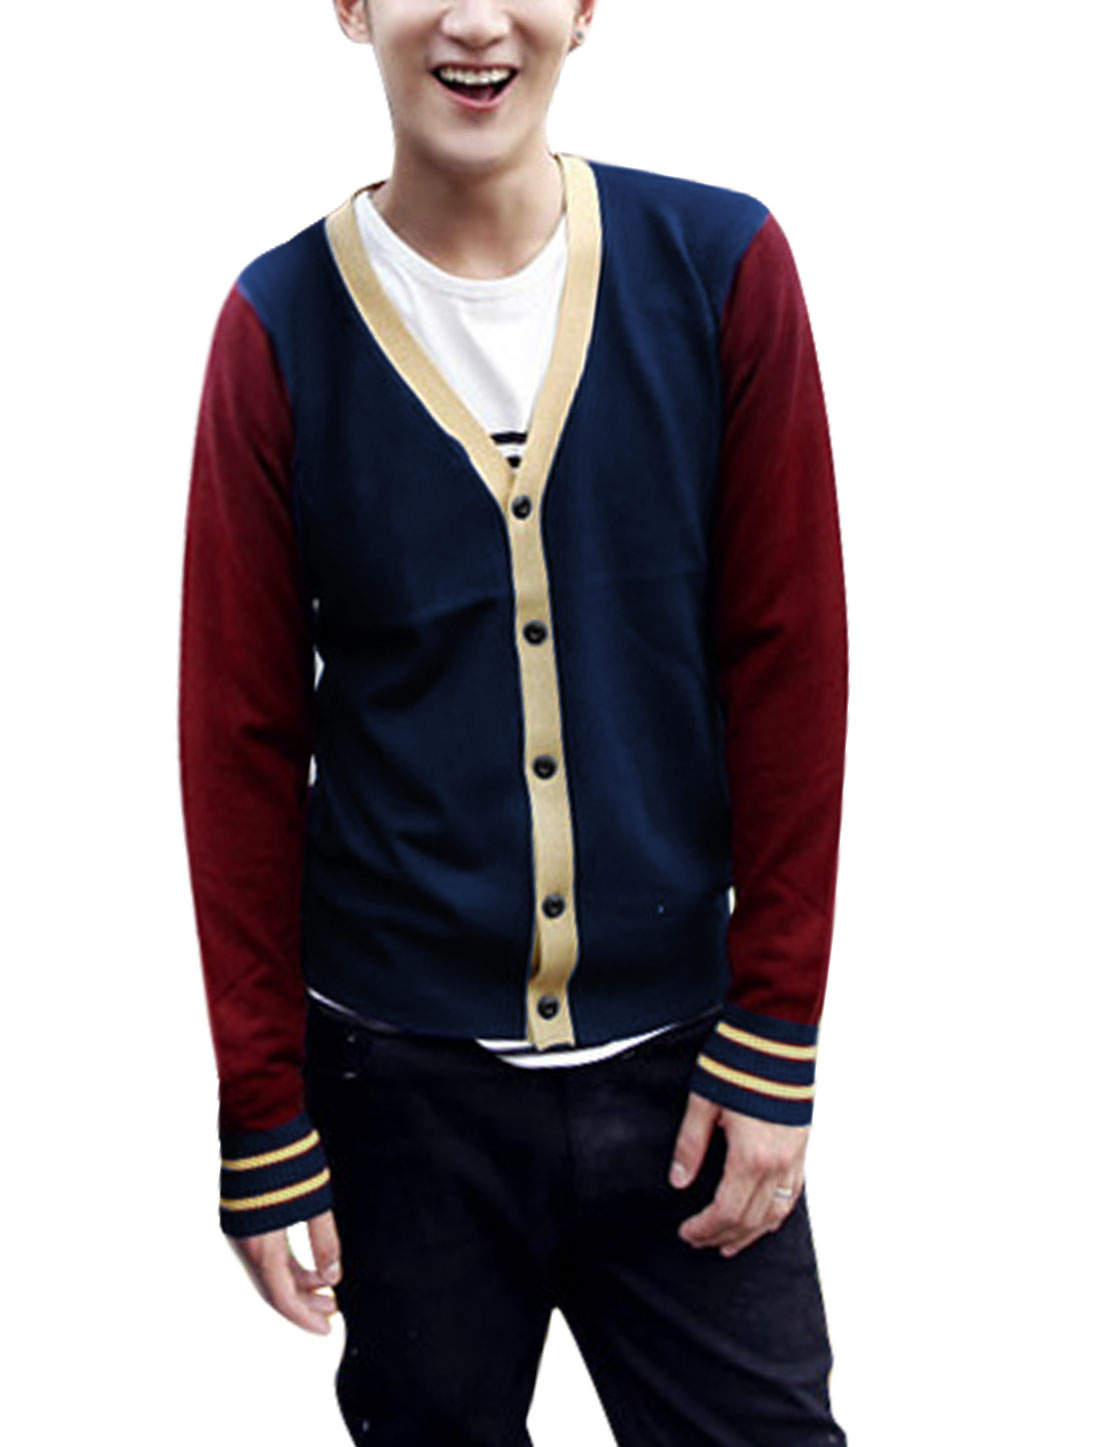 Man Contrast Color Long Sleeves Button Up Burgundy Navy Blue Cardigan Sweater M